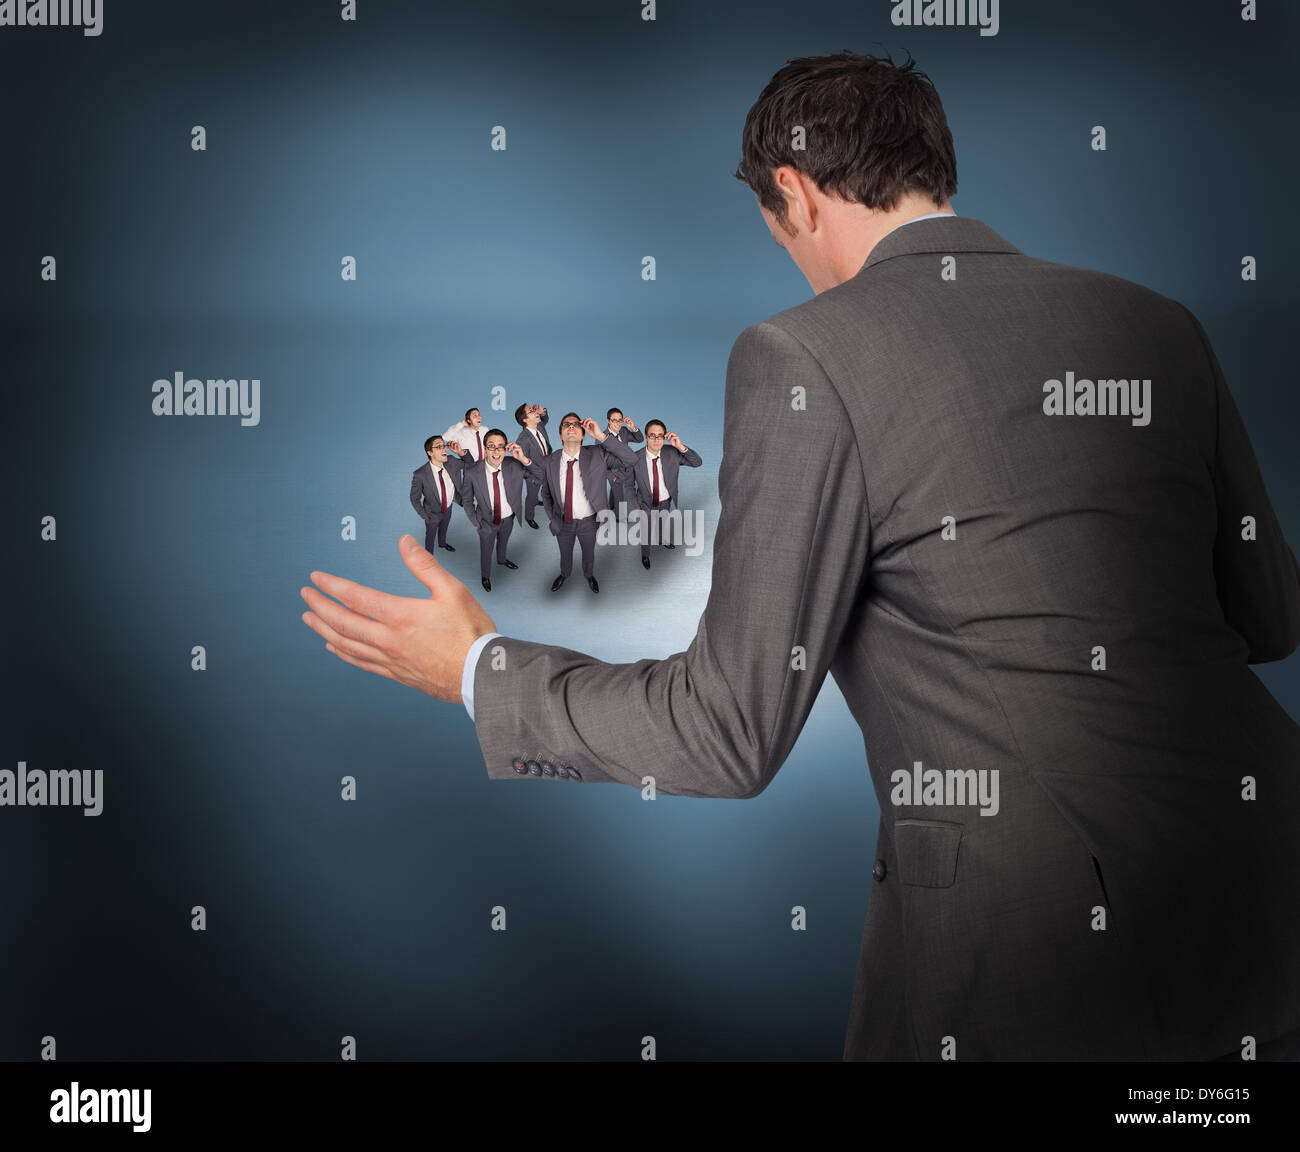 Composite image of businessman posing with hands out with tiny businessmen - Stock Image